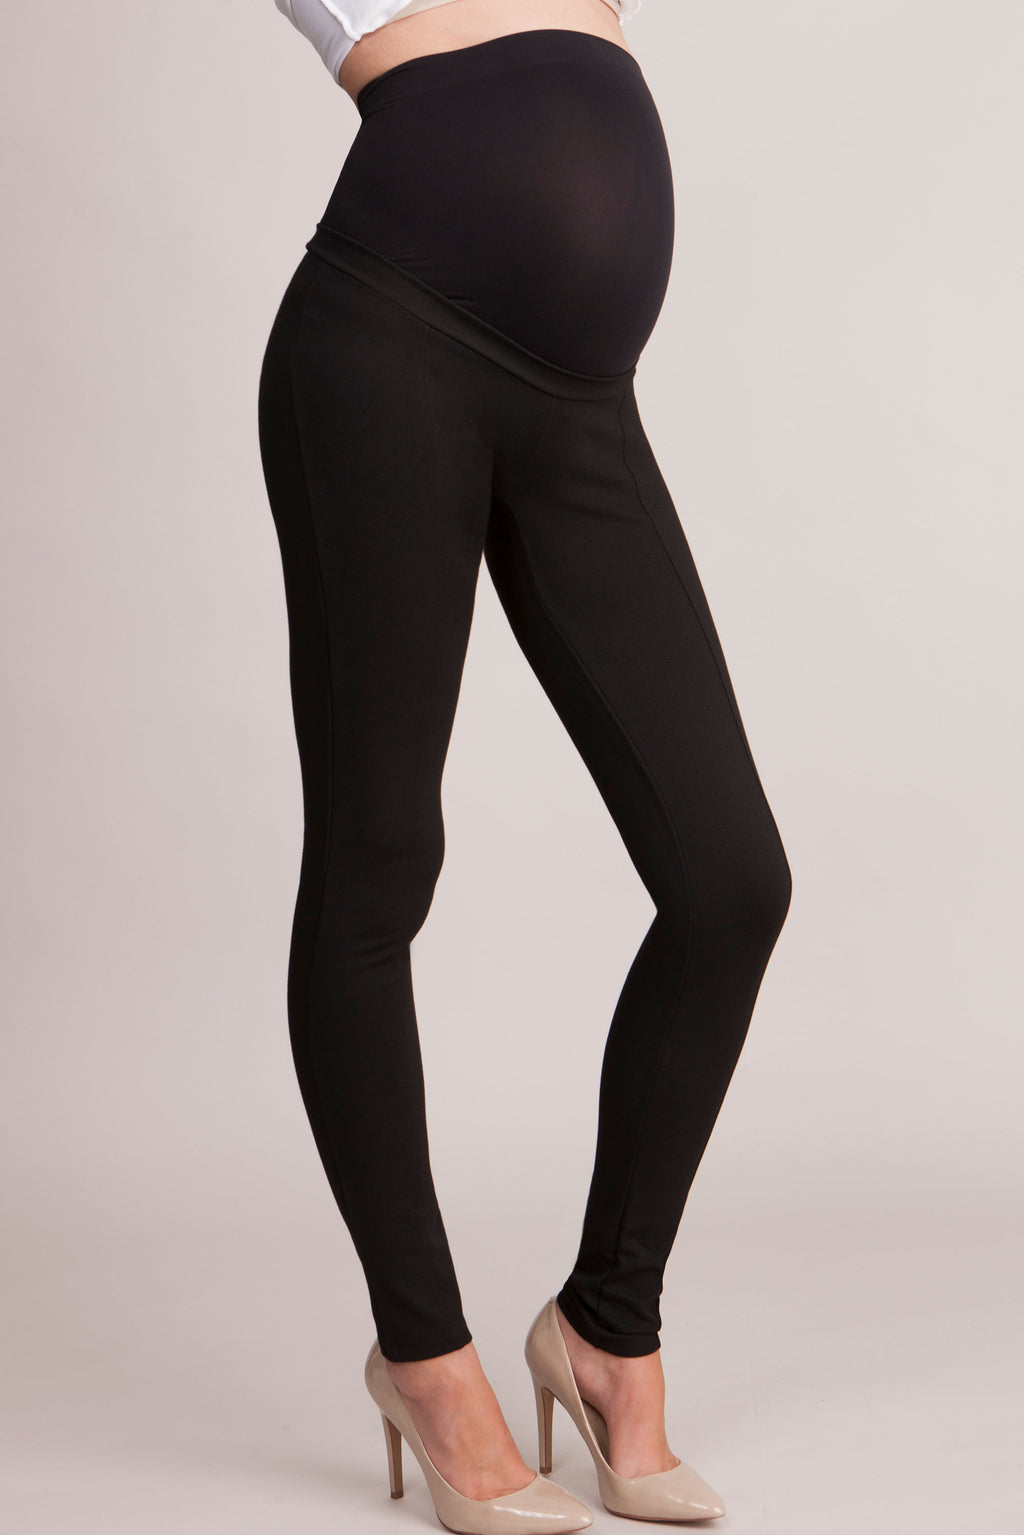 Seraphine Cruz Overbump Maternity Treggings - Seven Women Maternity